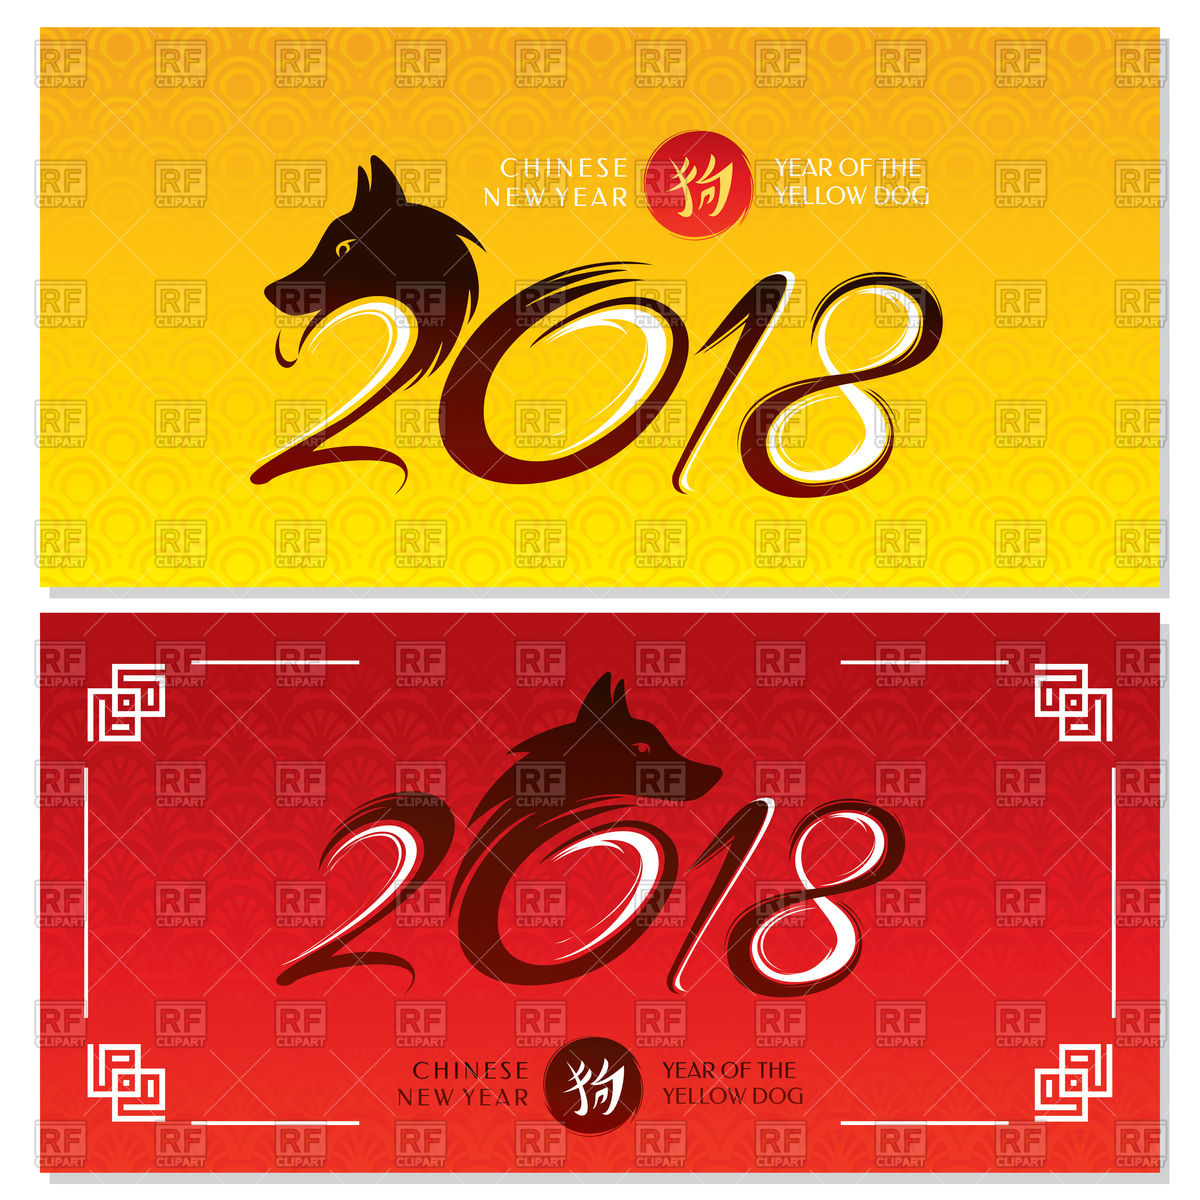 Chinese dog New year 2018 greeting cards Stock Vector Image.